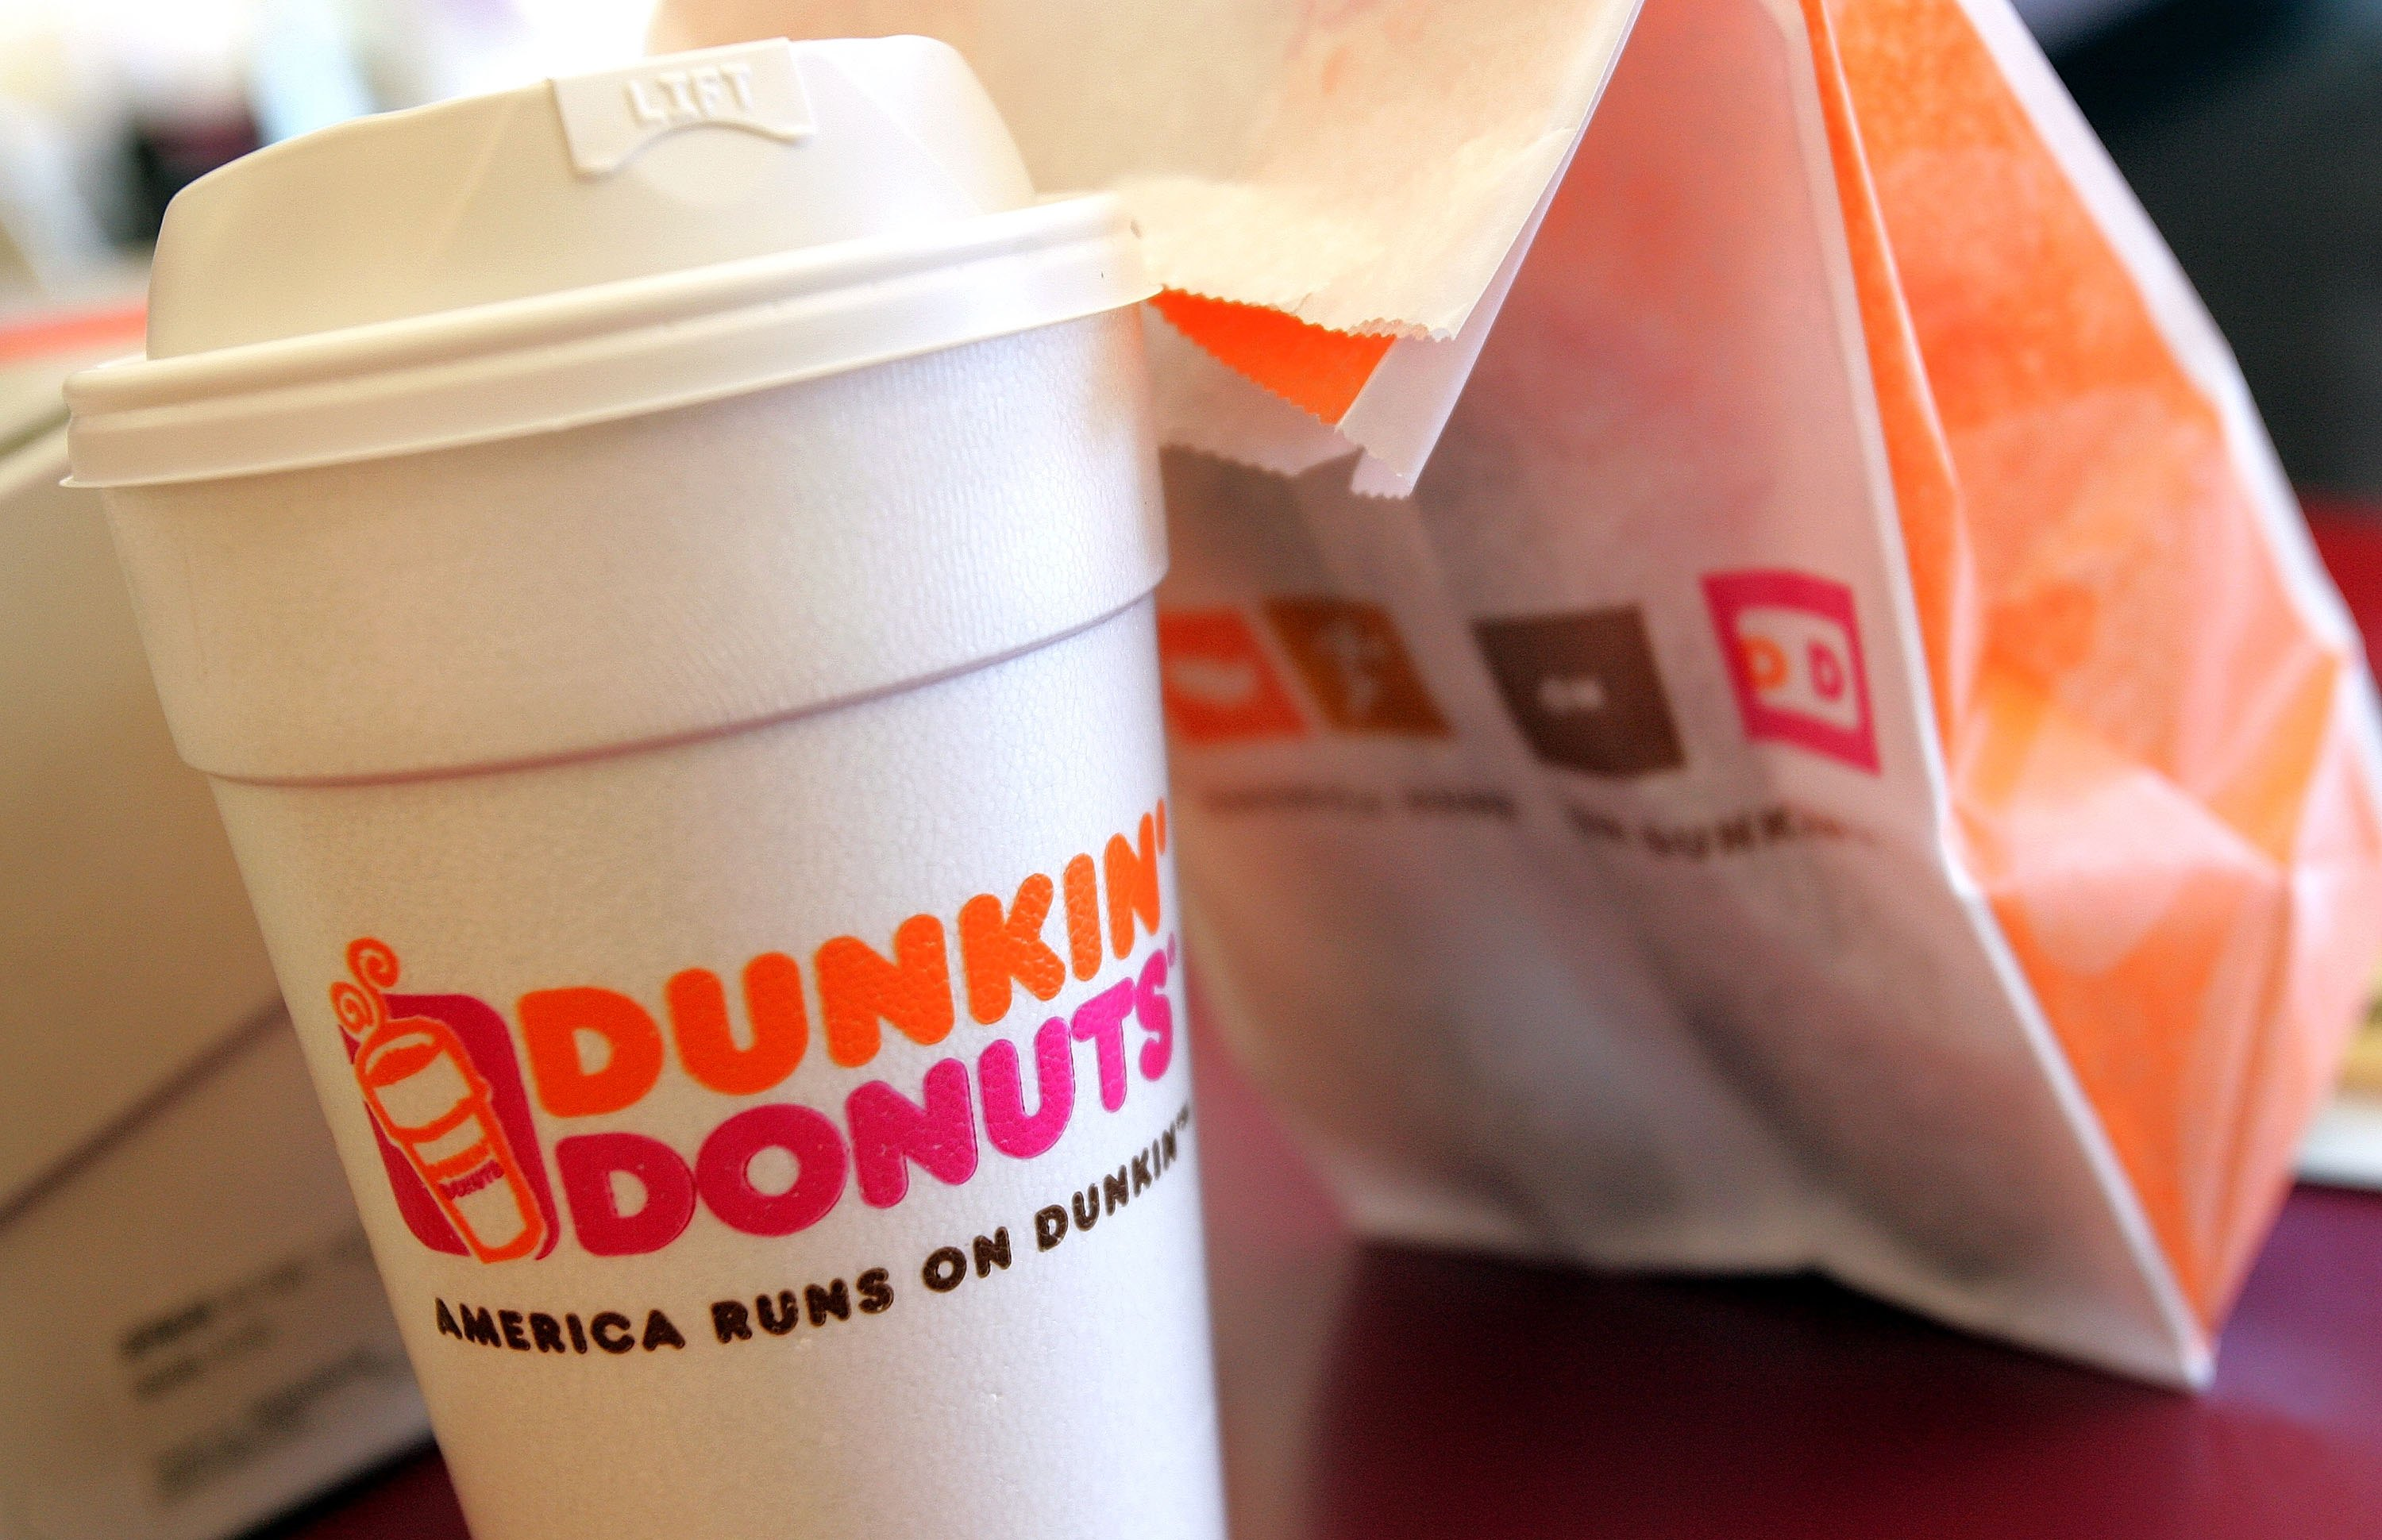 Welp, looks like people are dyeing their hair with Dunkin' Donuts coffee now